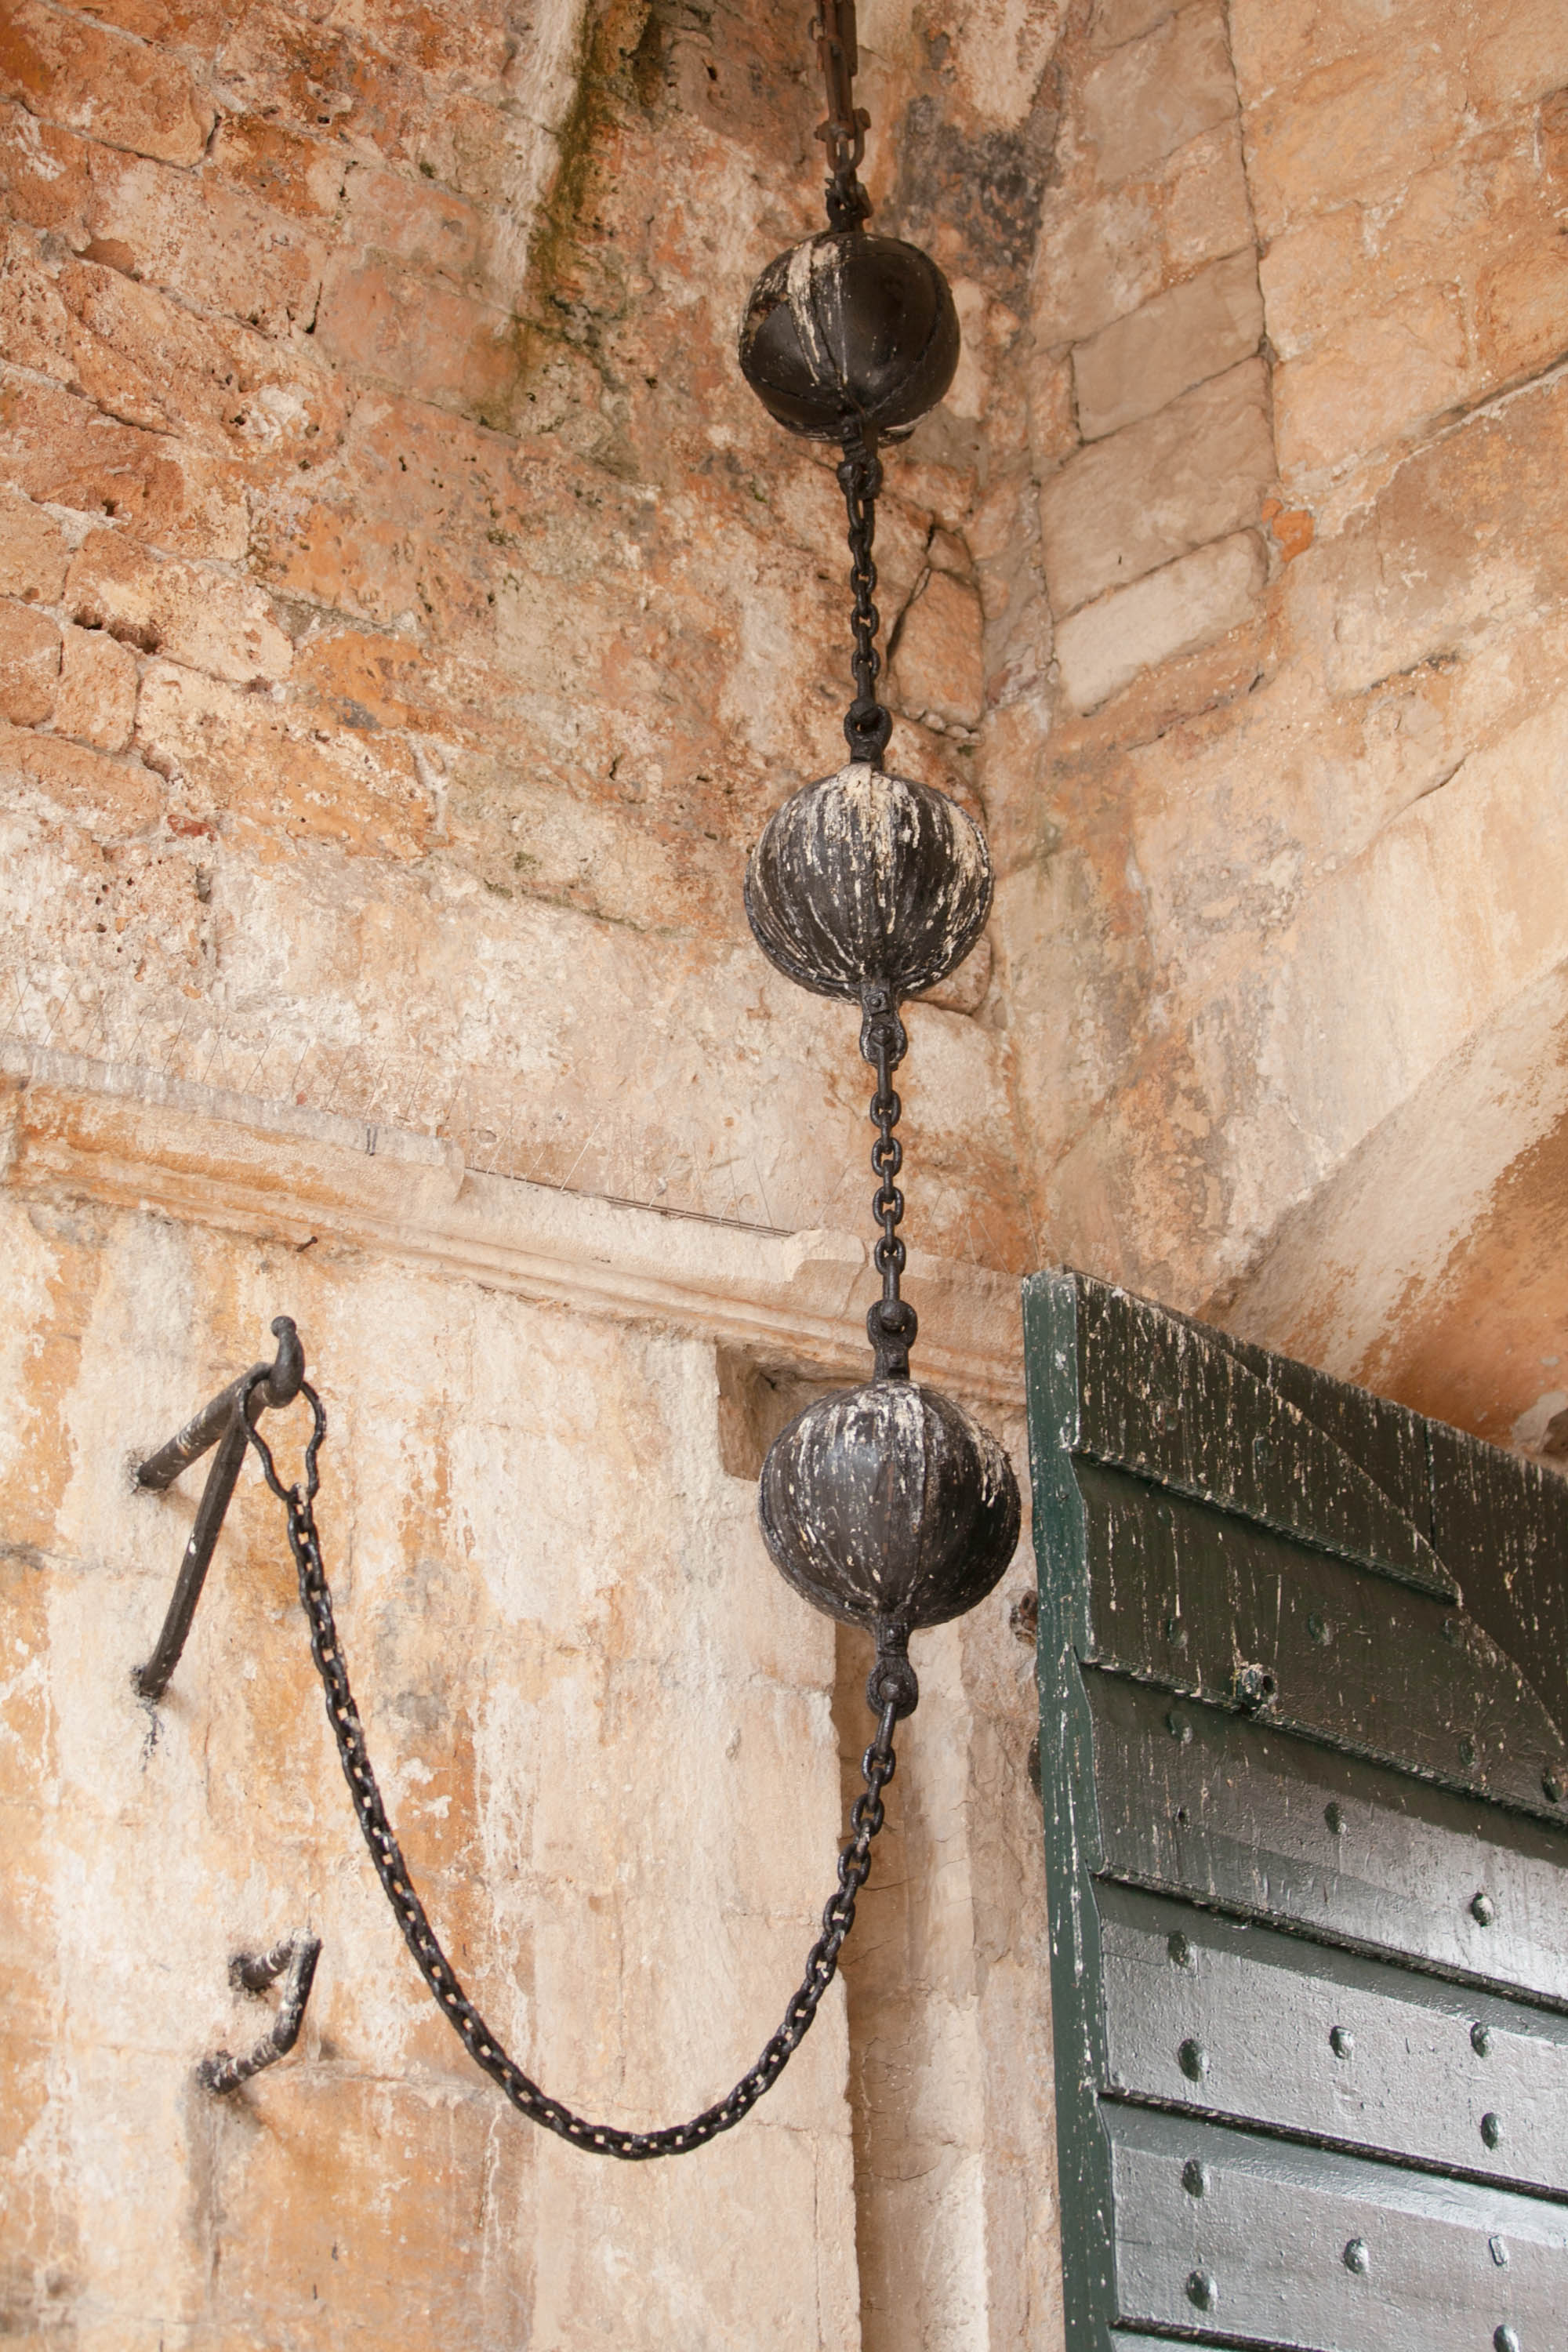 Dubrovnik gate weights